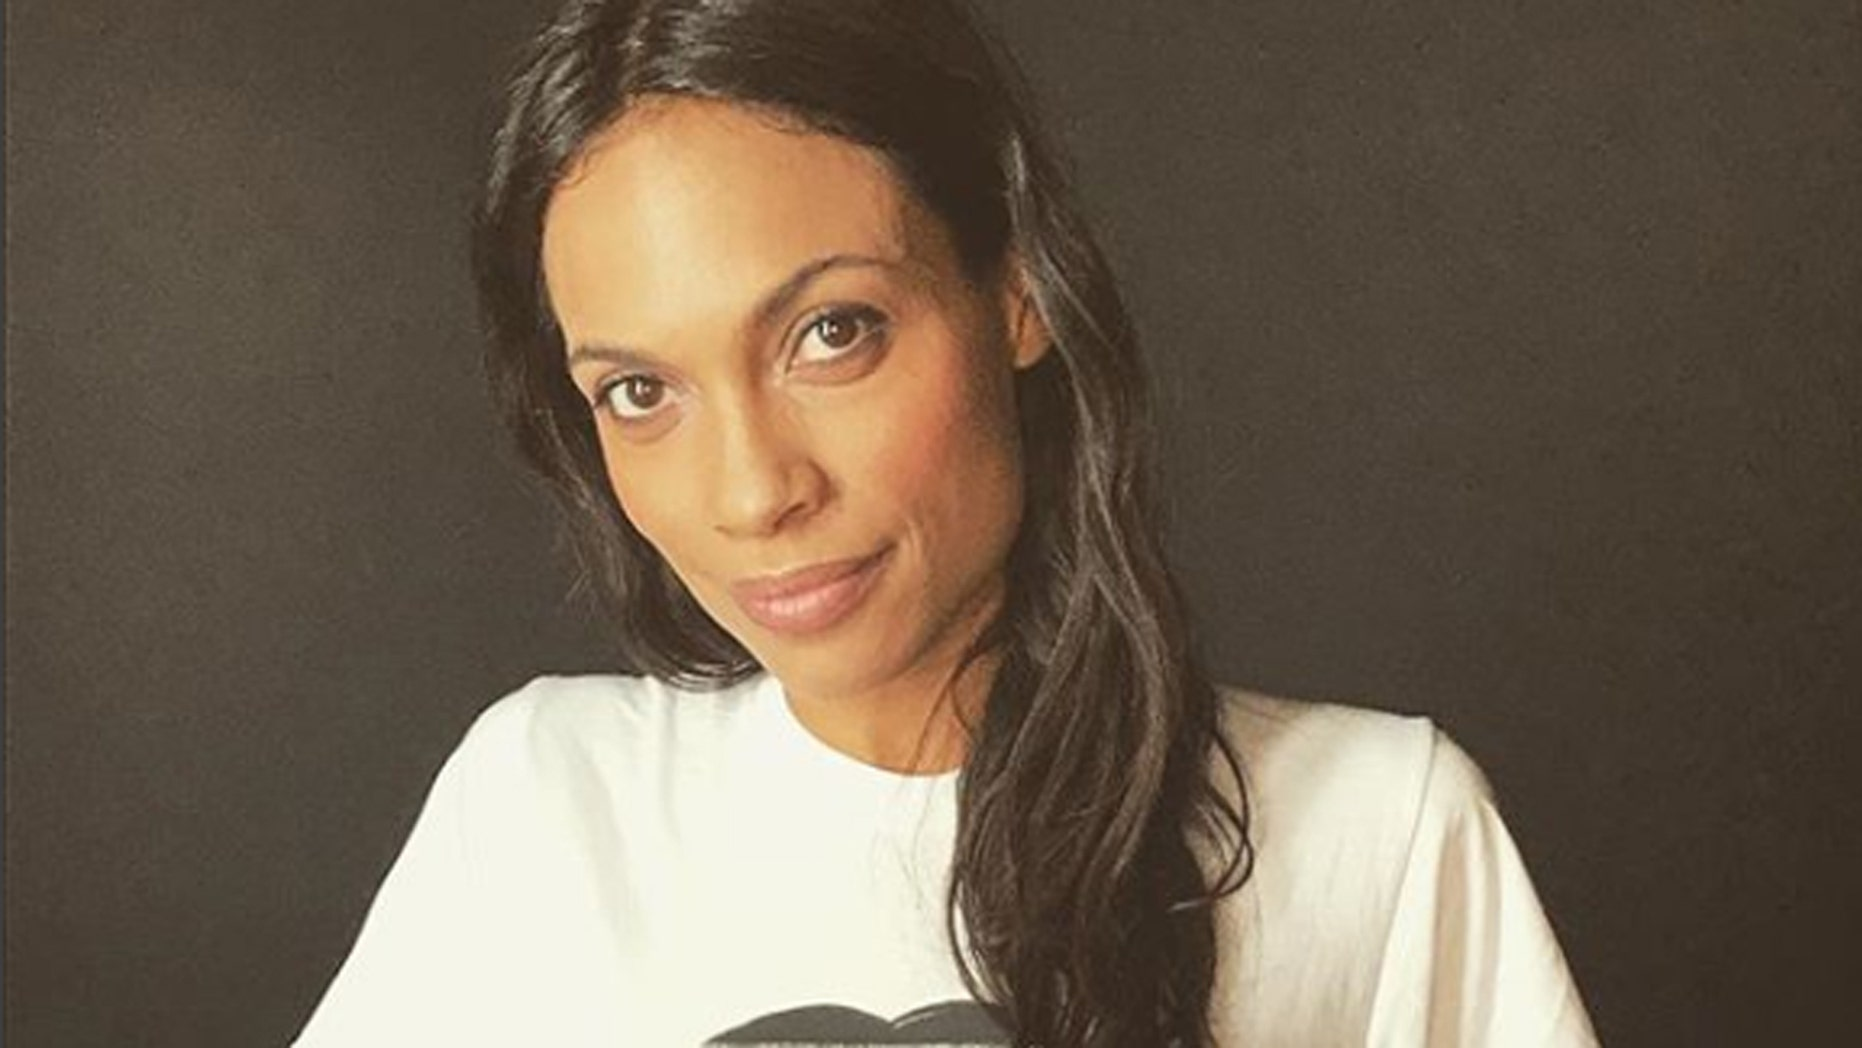 Actress Rosario Dawson shares nude seflies to celebrate her 39th birthday.